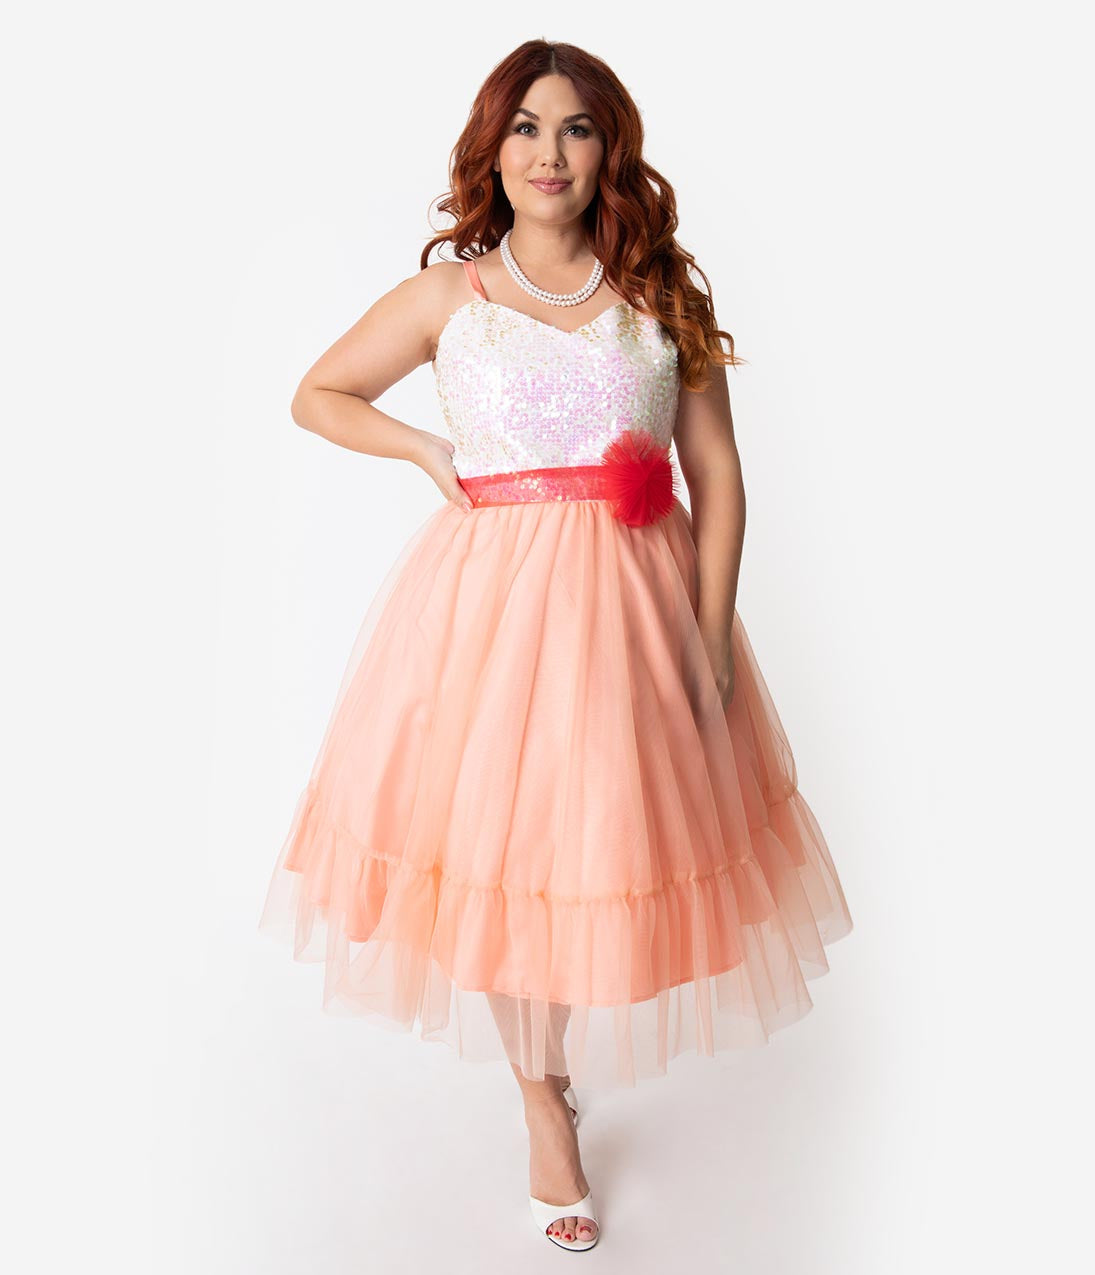 995b89f0de083 Barbie x Unique Vintage Plus Size Peaches N Cream Chiffon Dress